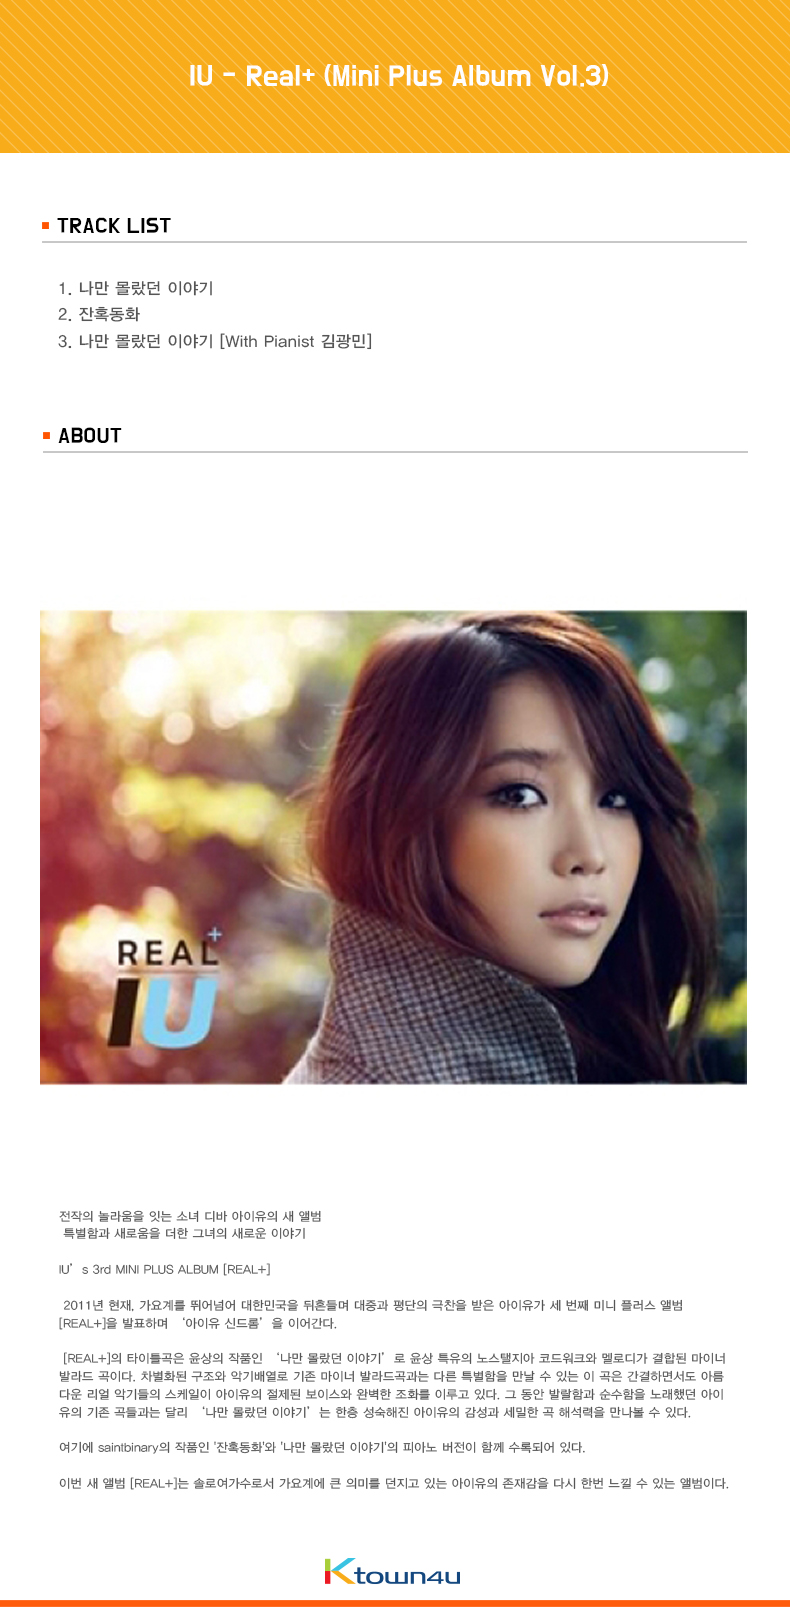 IU - Real+ (Mini Plus Album Vol.3)